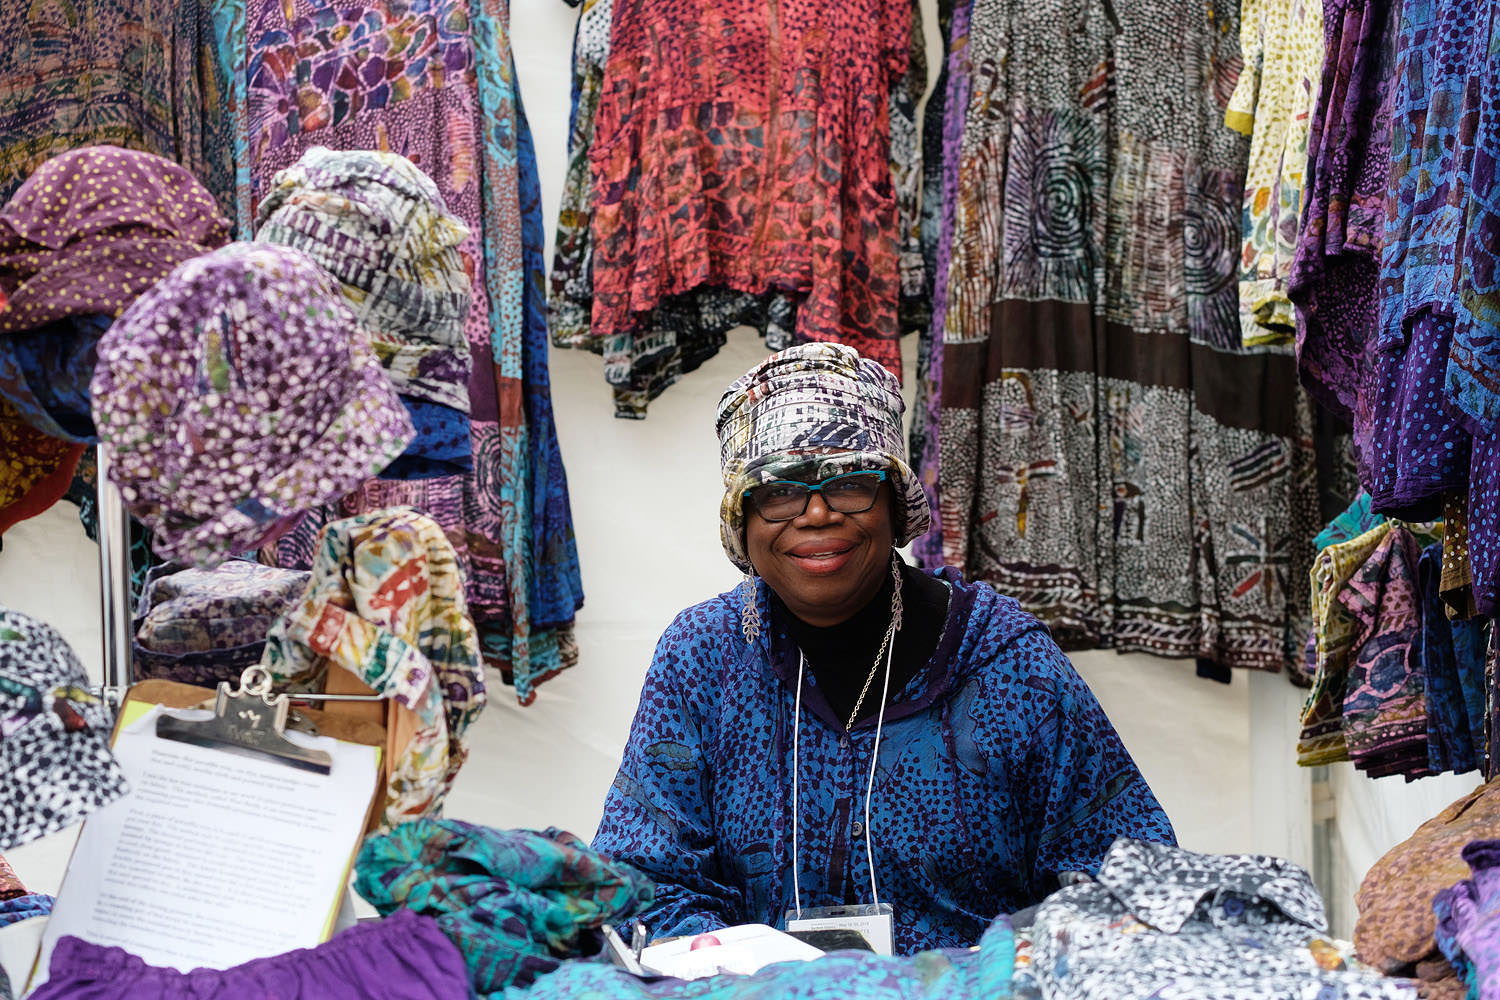 Textile artist at the Northern Virginia Fine Arts Festival